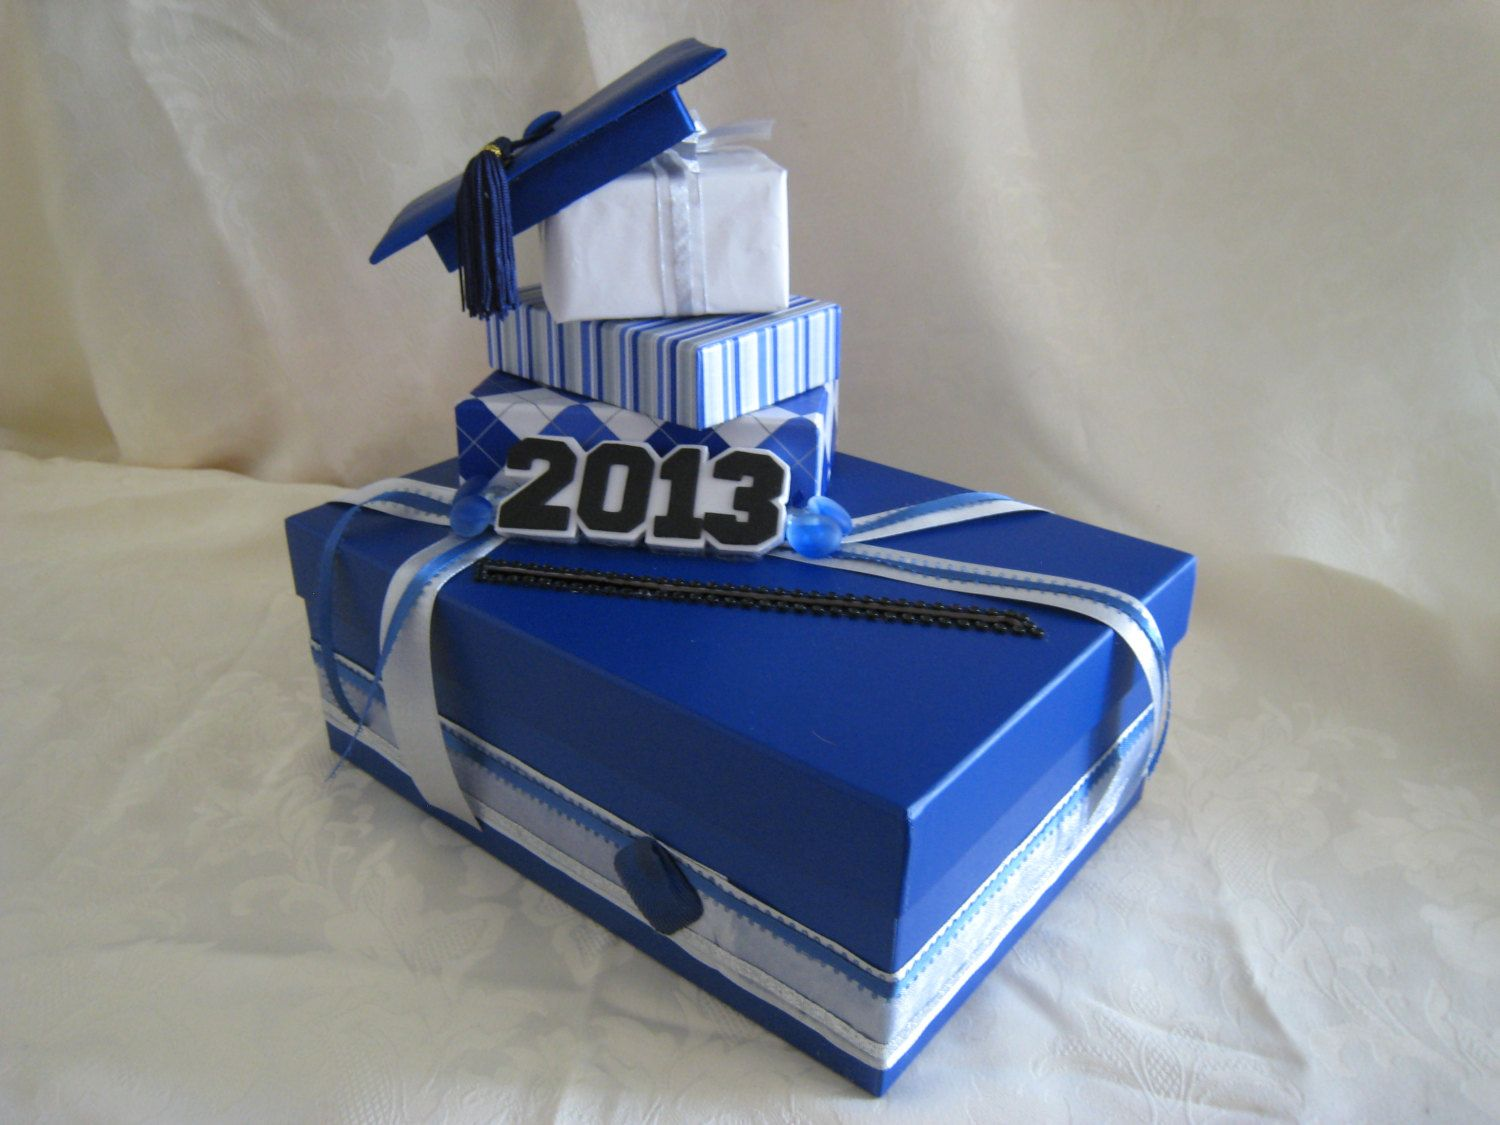 Royal Blue X2f Silver X2f White Graduation Party By Lisaspaperparrodise Graduation Party Cards Party Card Box Graduation Card Boxes